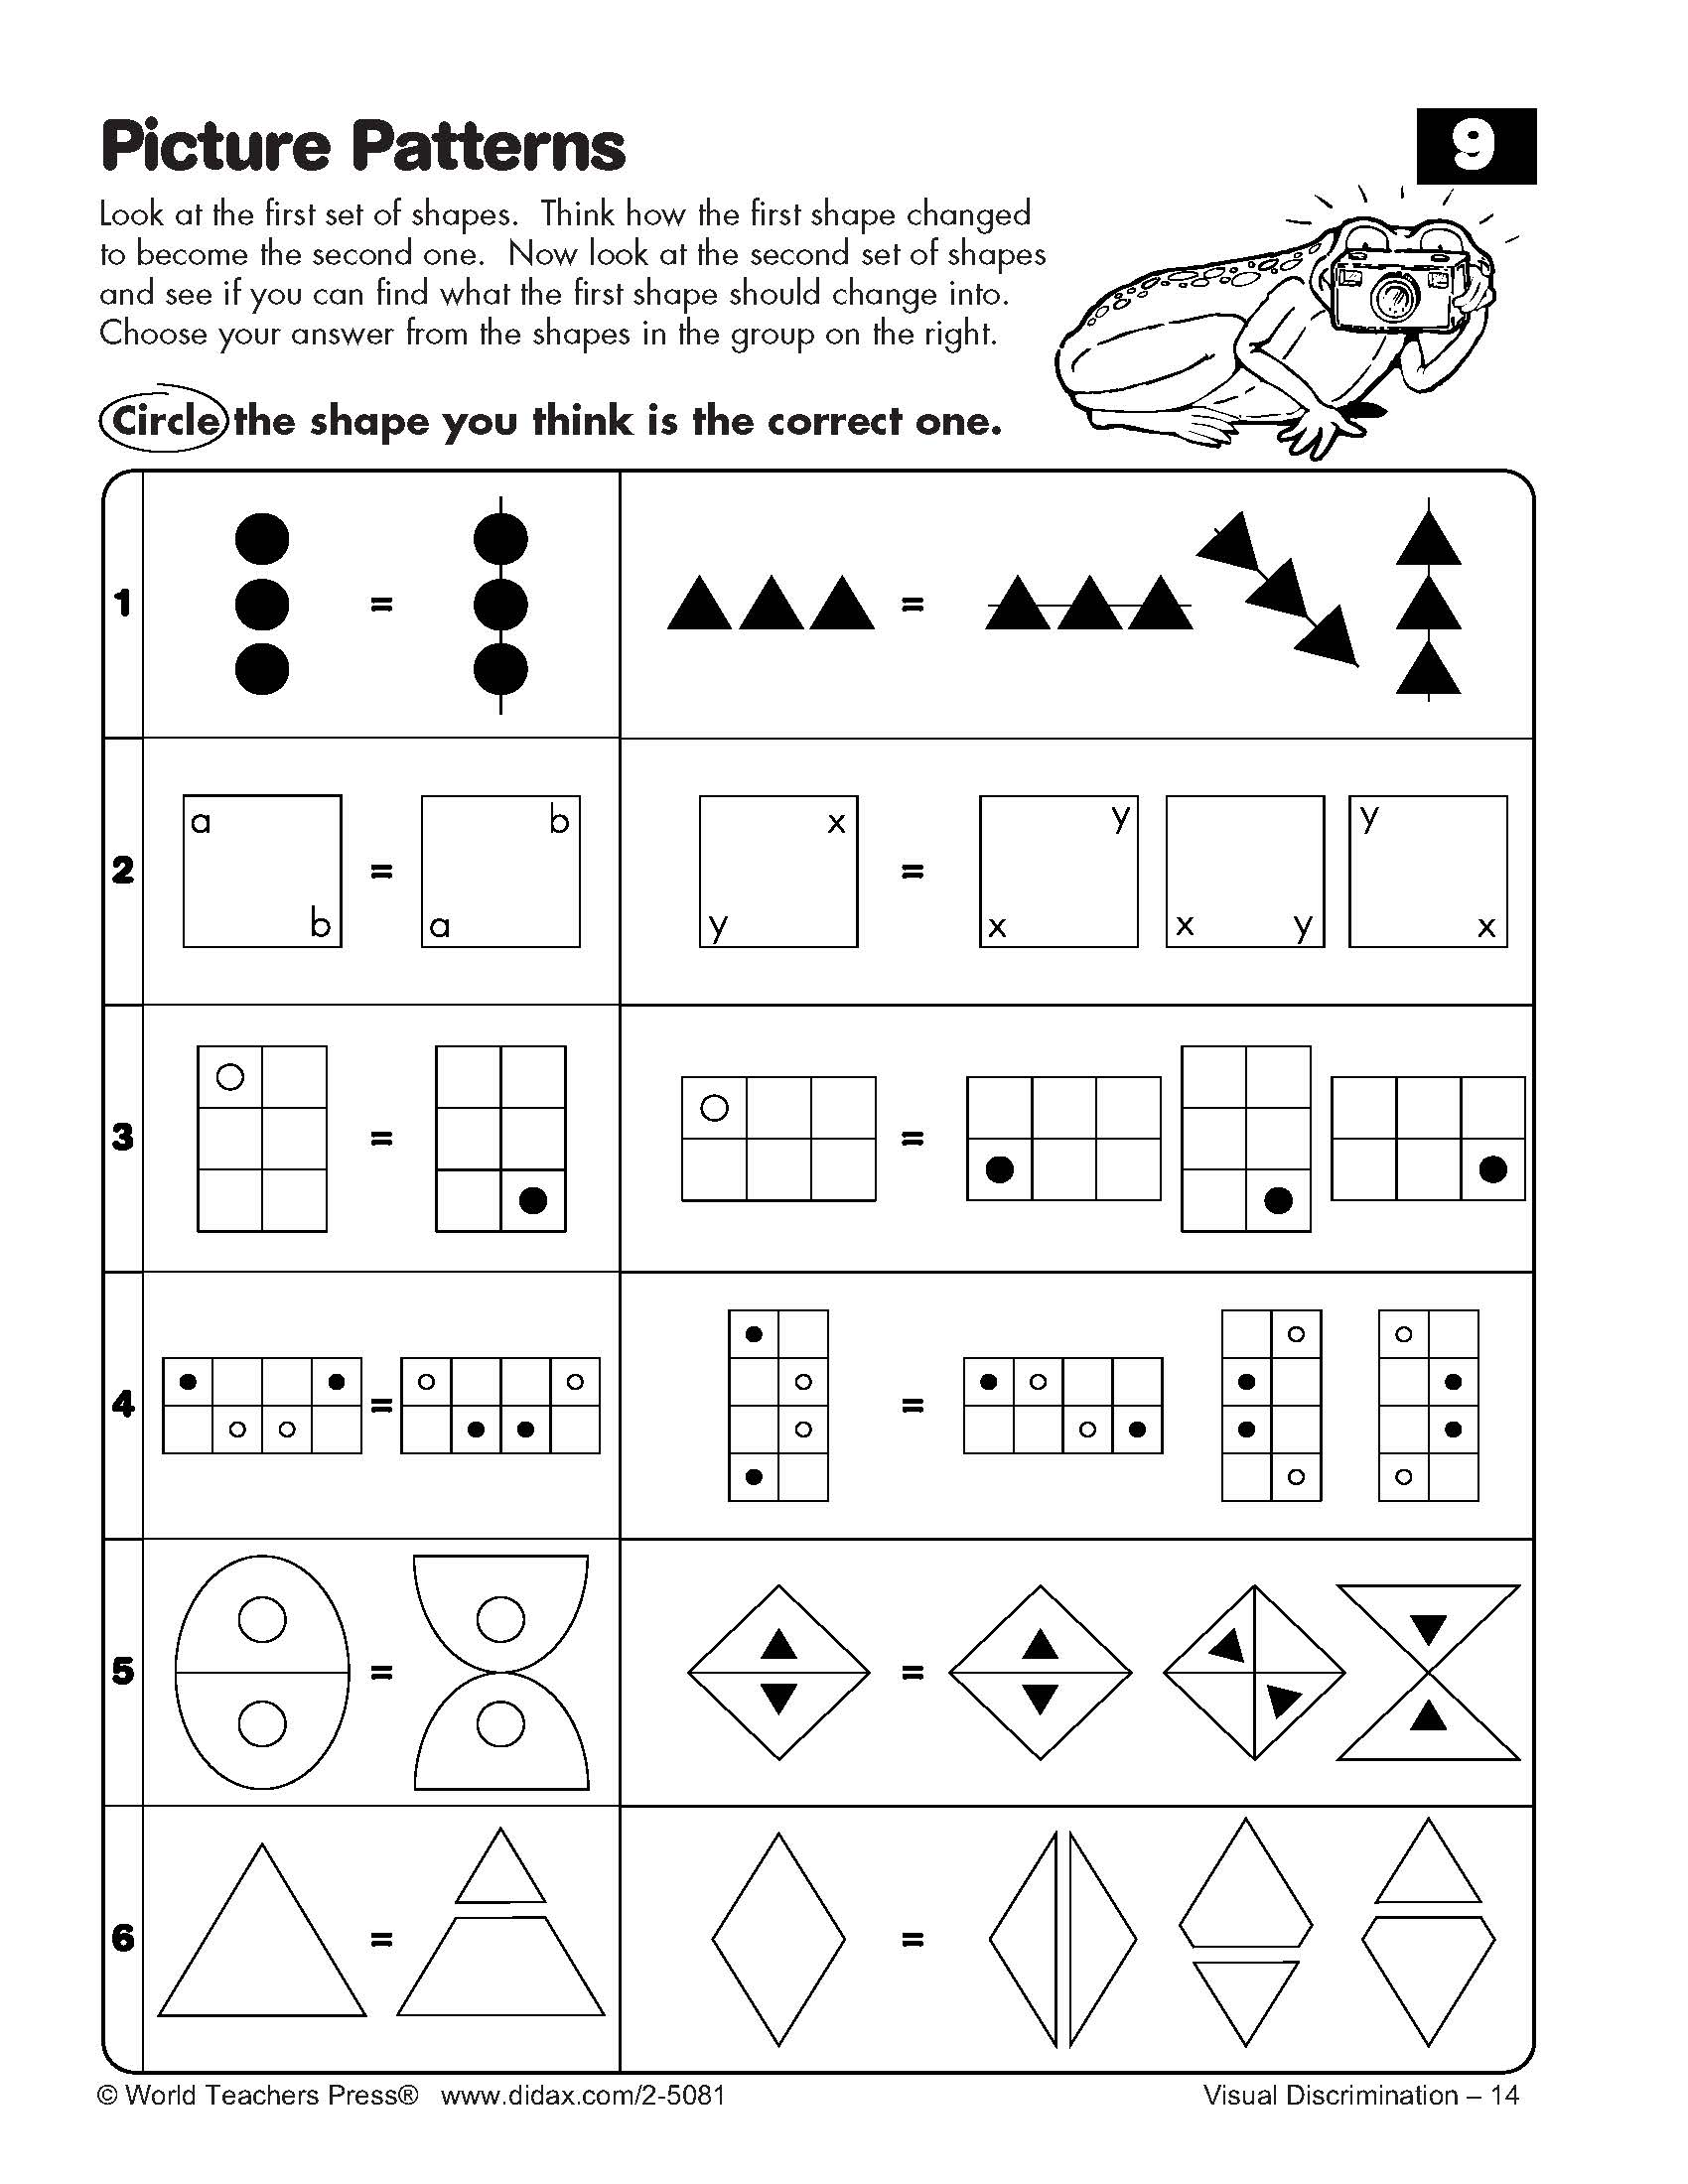 15 Best Images Of Visual Discrimination Worksheets For 4th